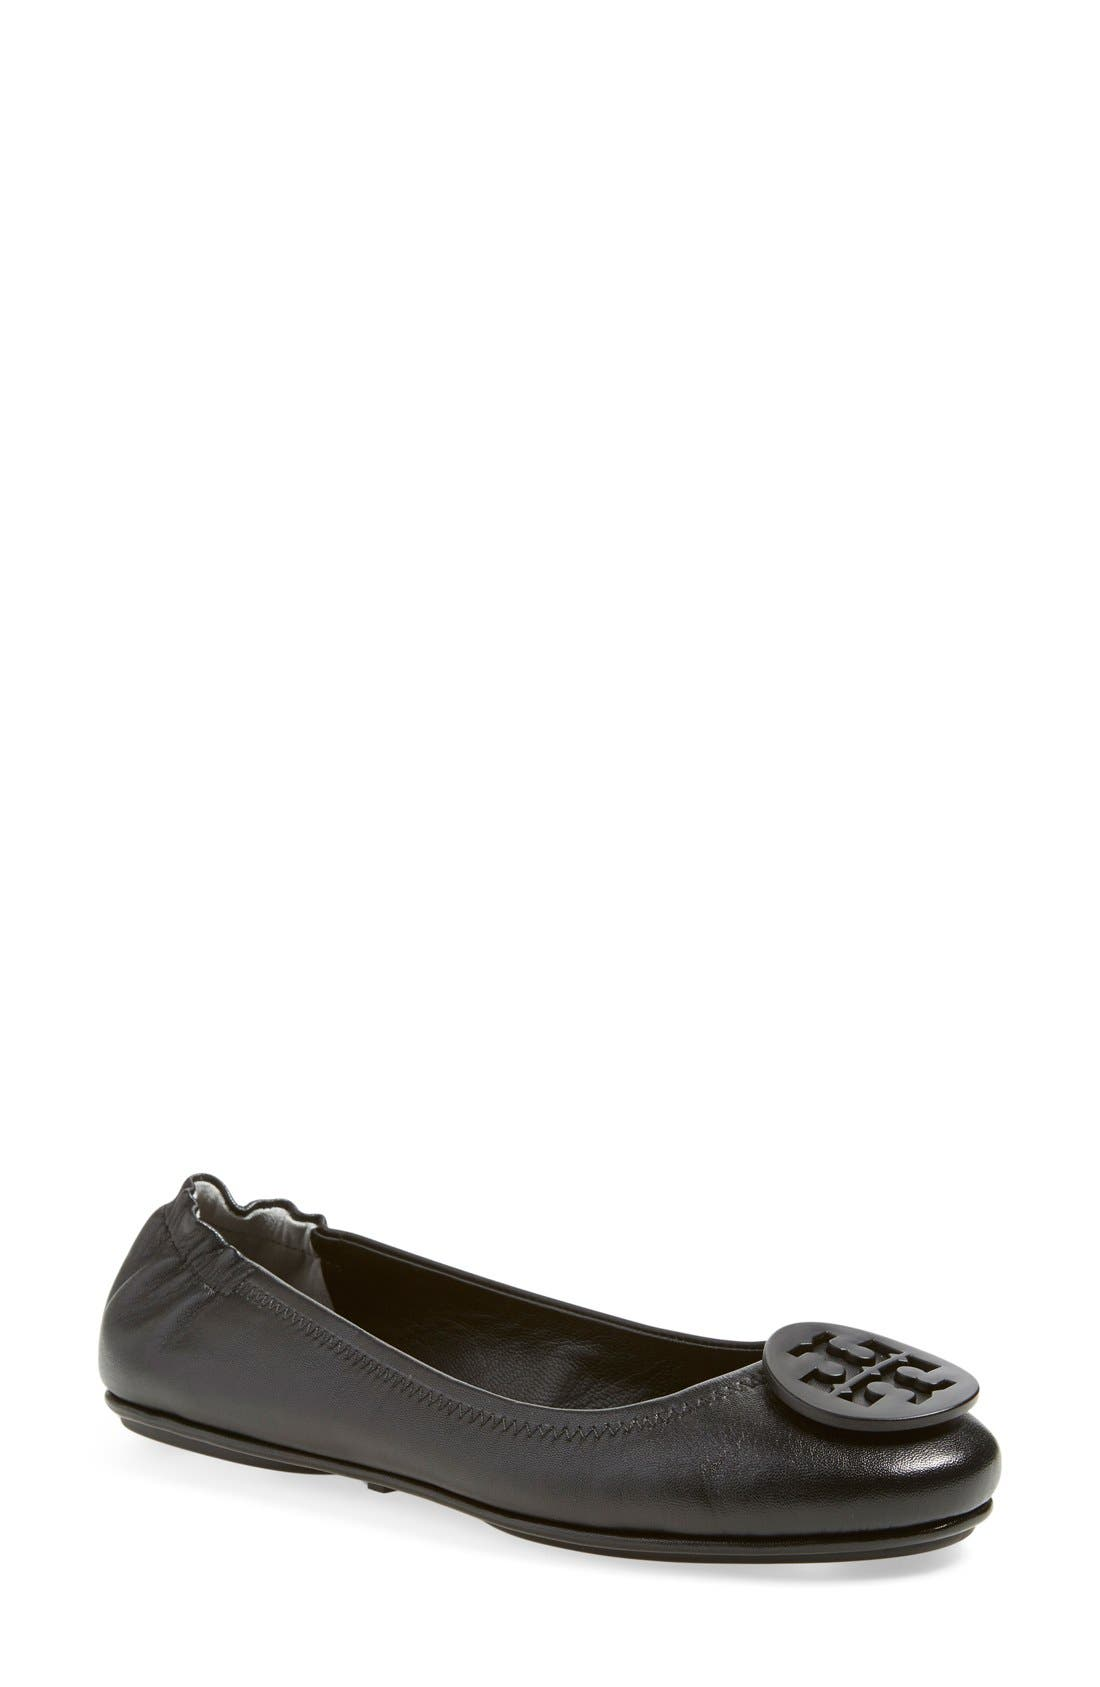 Details: Shop for a sleek and classy look from Tory Burch's selection of flats, slippers and loafers, all available for under $ Each provides a look that's elegant while still .